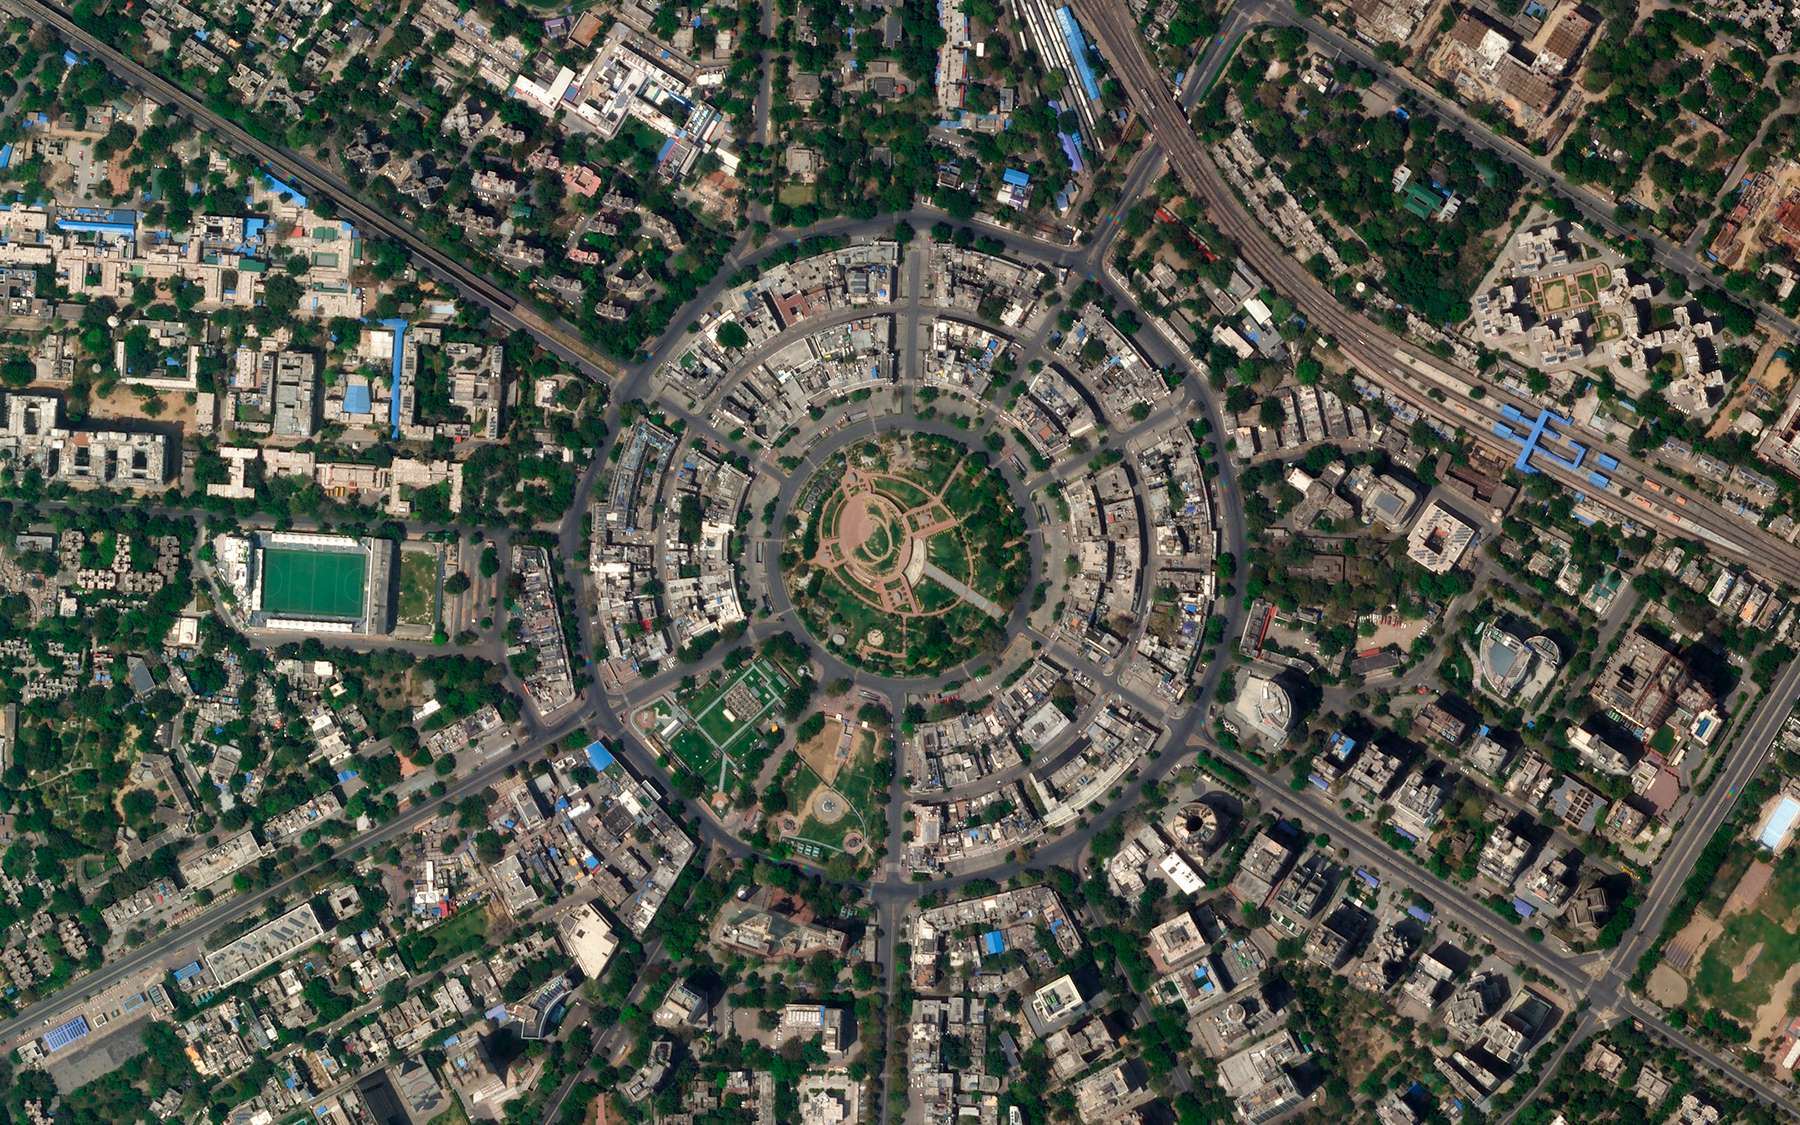 New Delhi, à l'heure du confinement. © 2020 Planet Labs, Inc